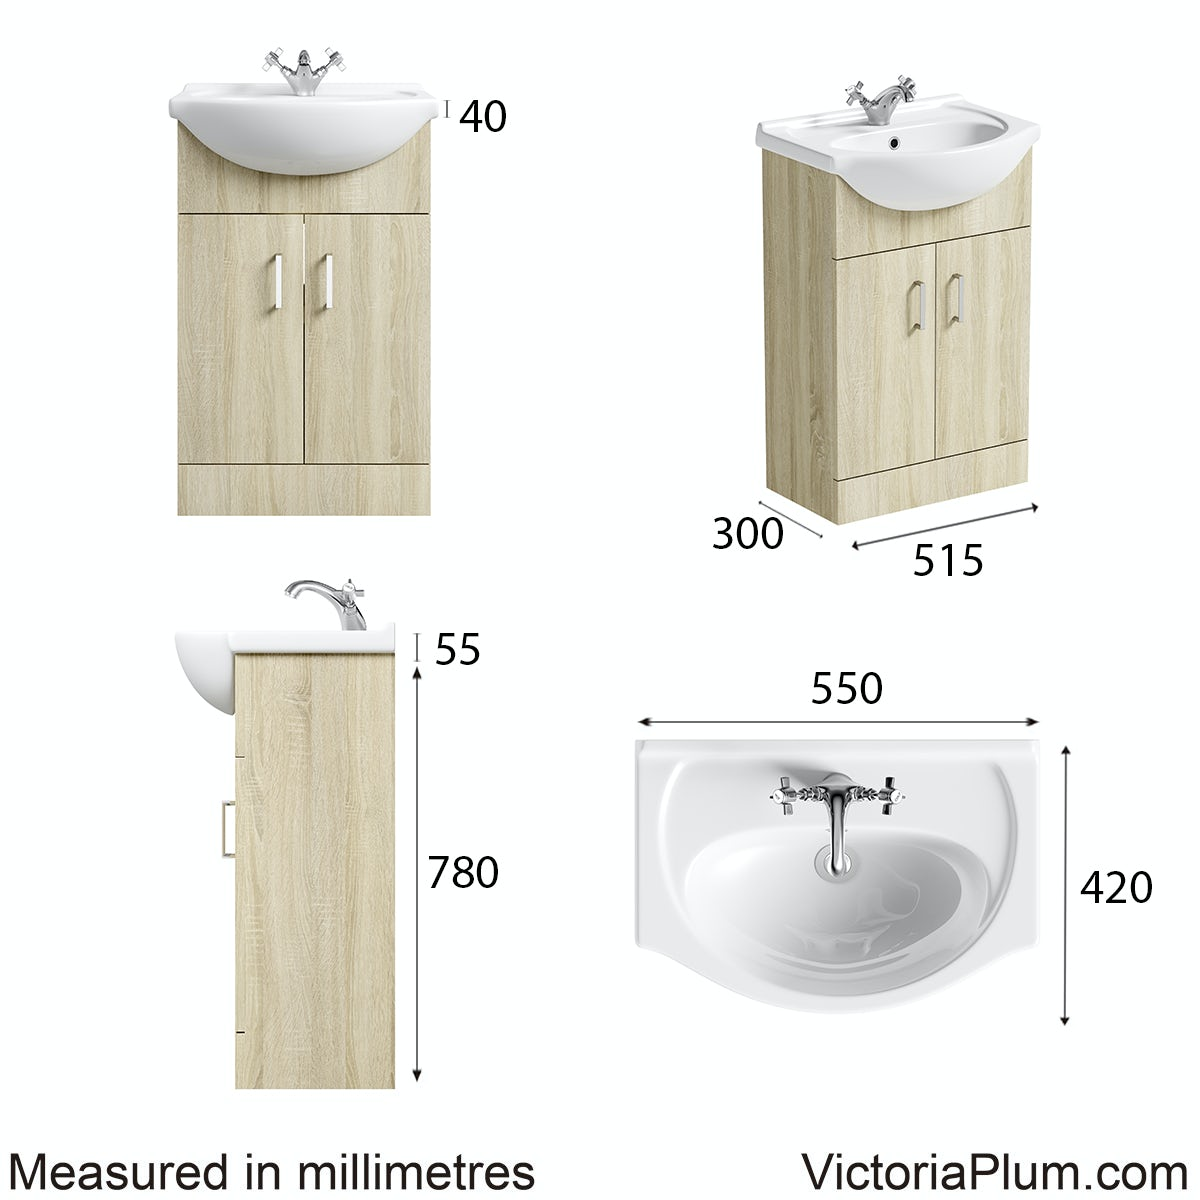 Dimensions for Orchard Eden oak vanity unit and basin 550mm